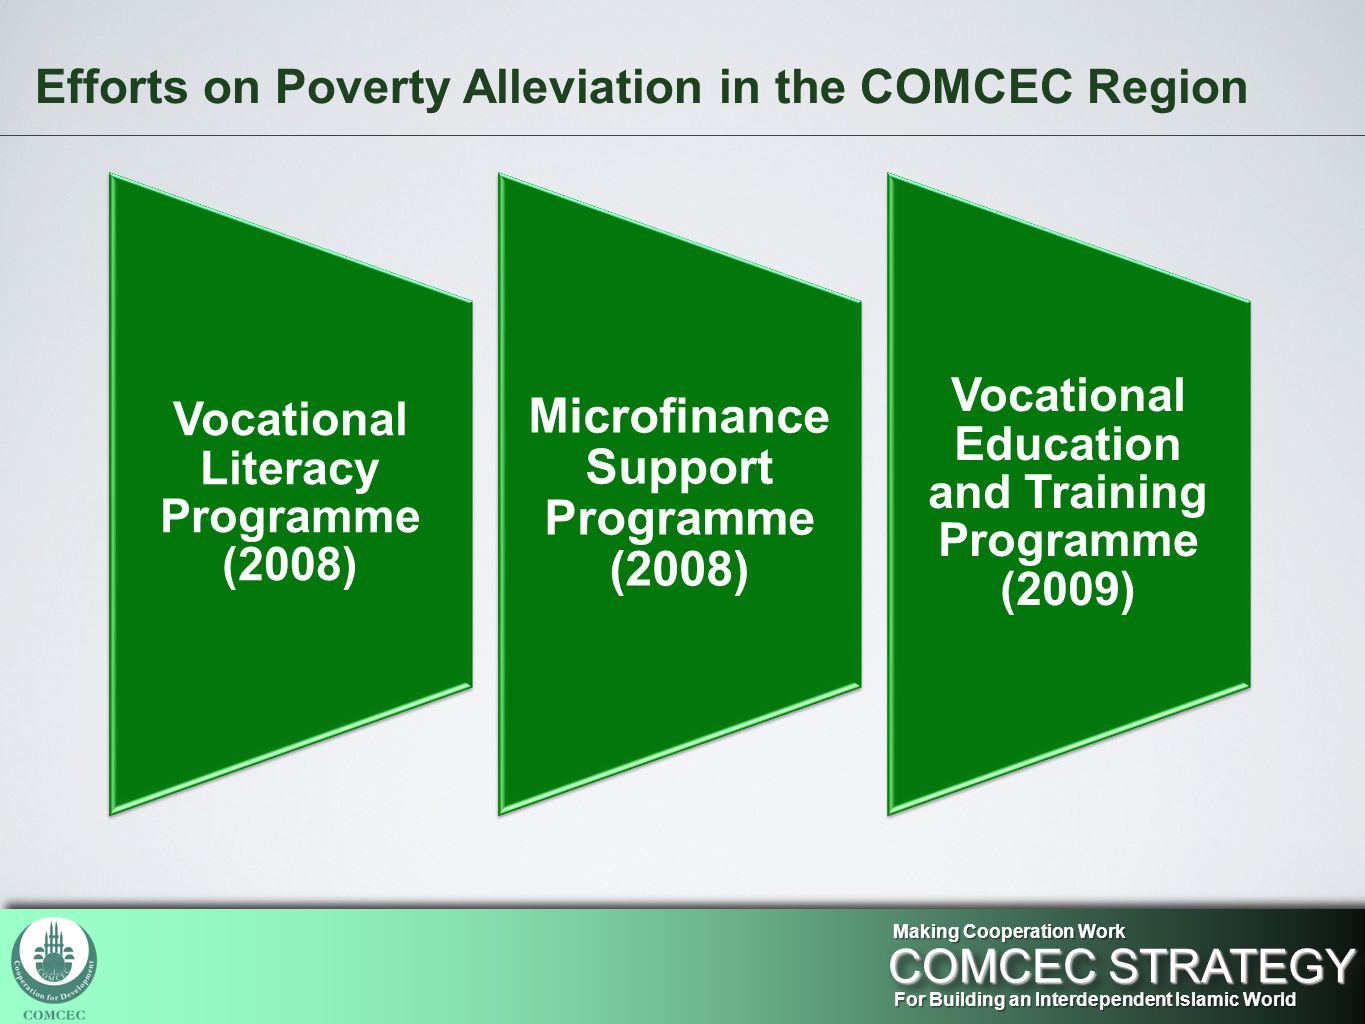 Efforts on Poverty Alleviation in the COMCEC Region For Building an Interdependent Islamic World COMCEC STRATEGY Making Cooperation Work Vocational Literacy Programme (2008) Microfinance Support Programme (2008) Vocational Education and Training Programme (2009)